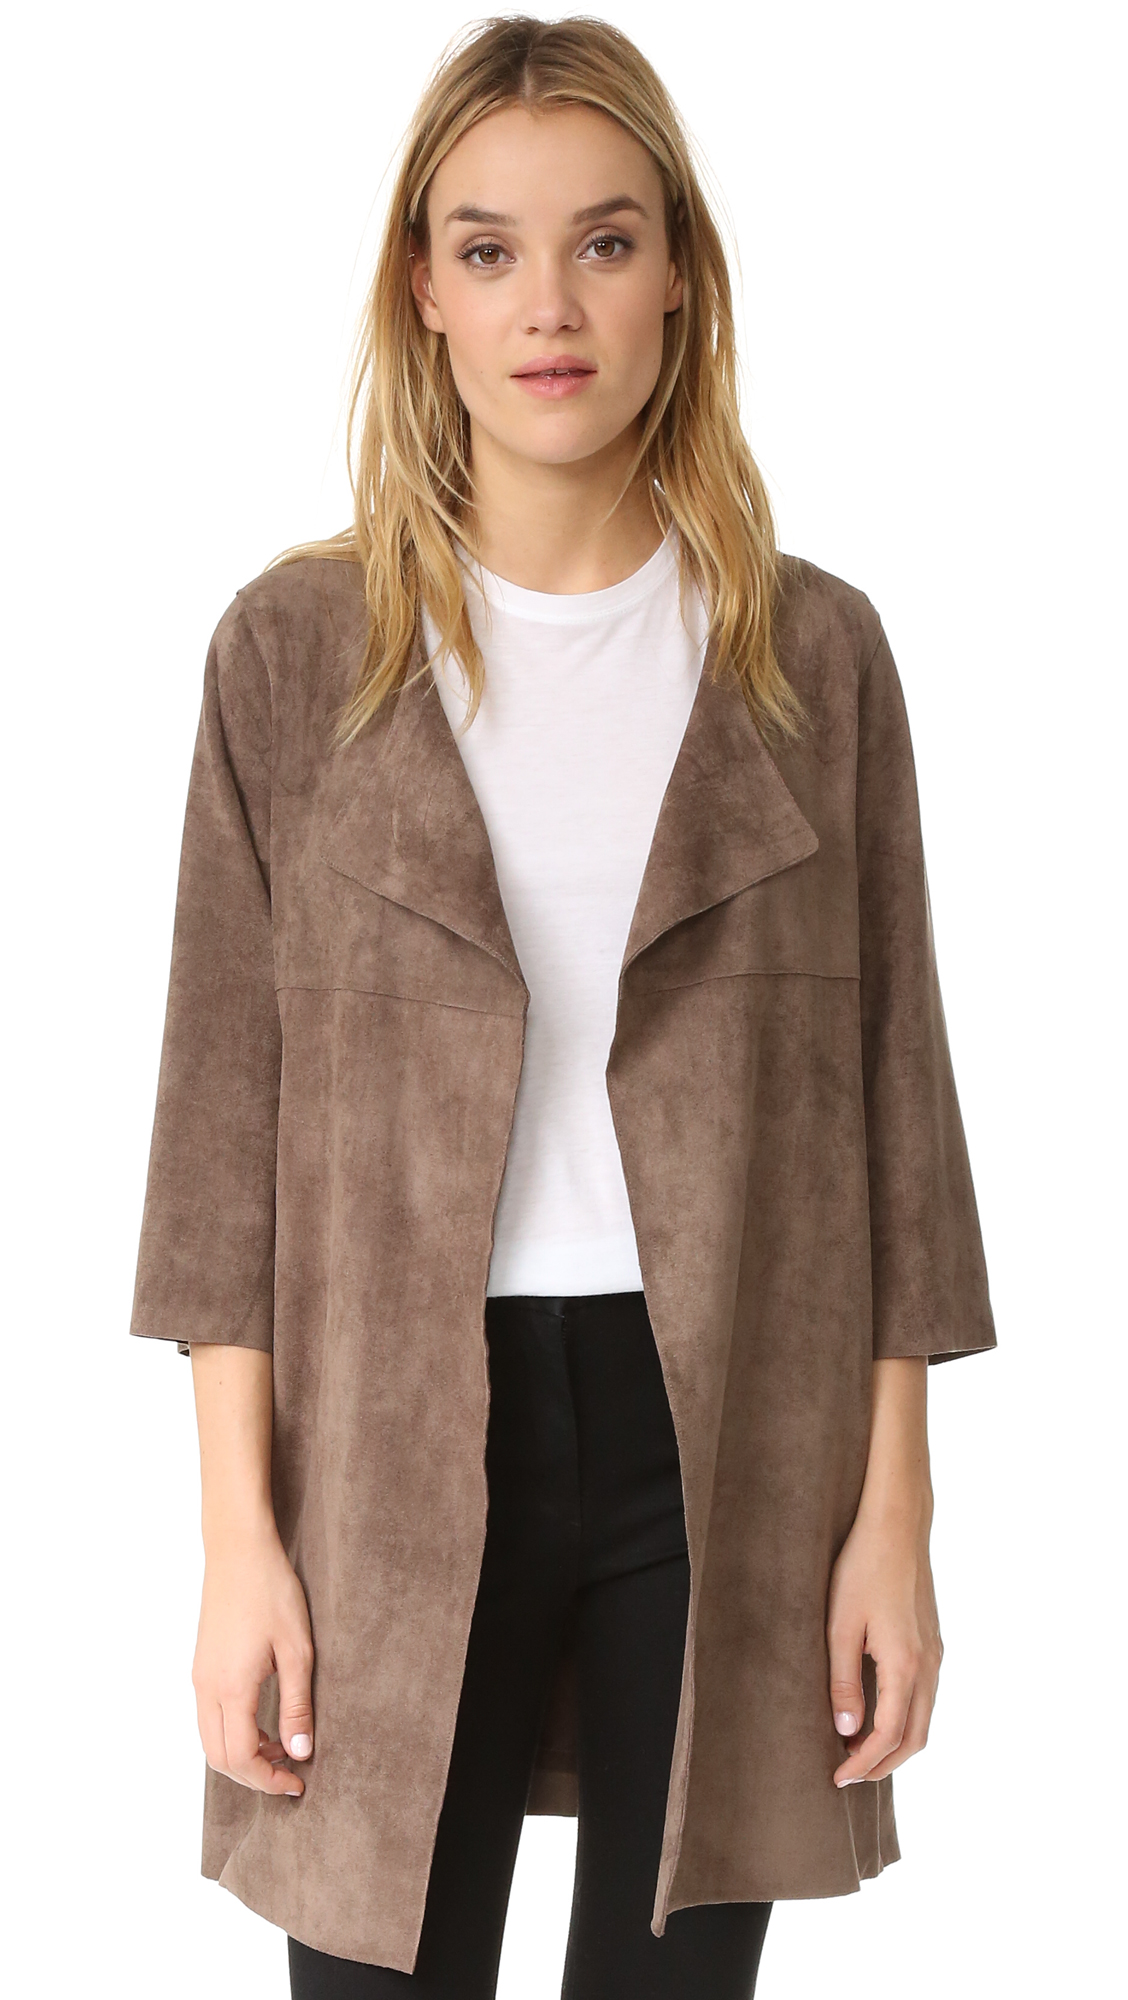 And B Marlo Faux Suede Jacket - Taupe at Shopbop